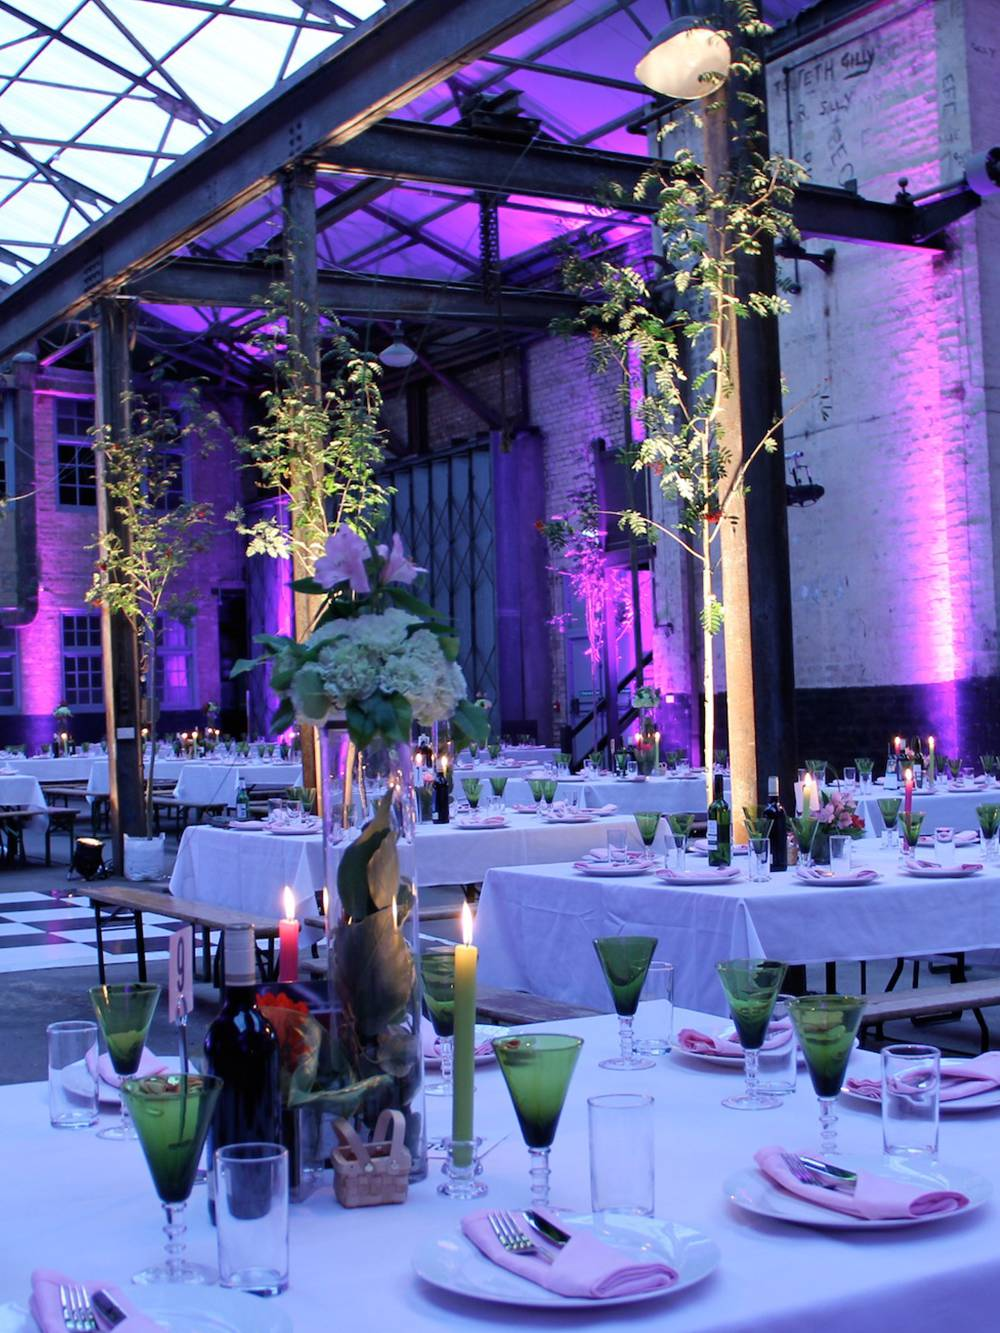 Camp & Furnace Liverpool with lighting for an awards ceremony.